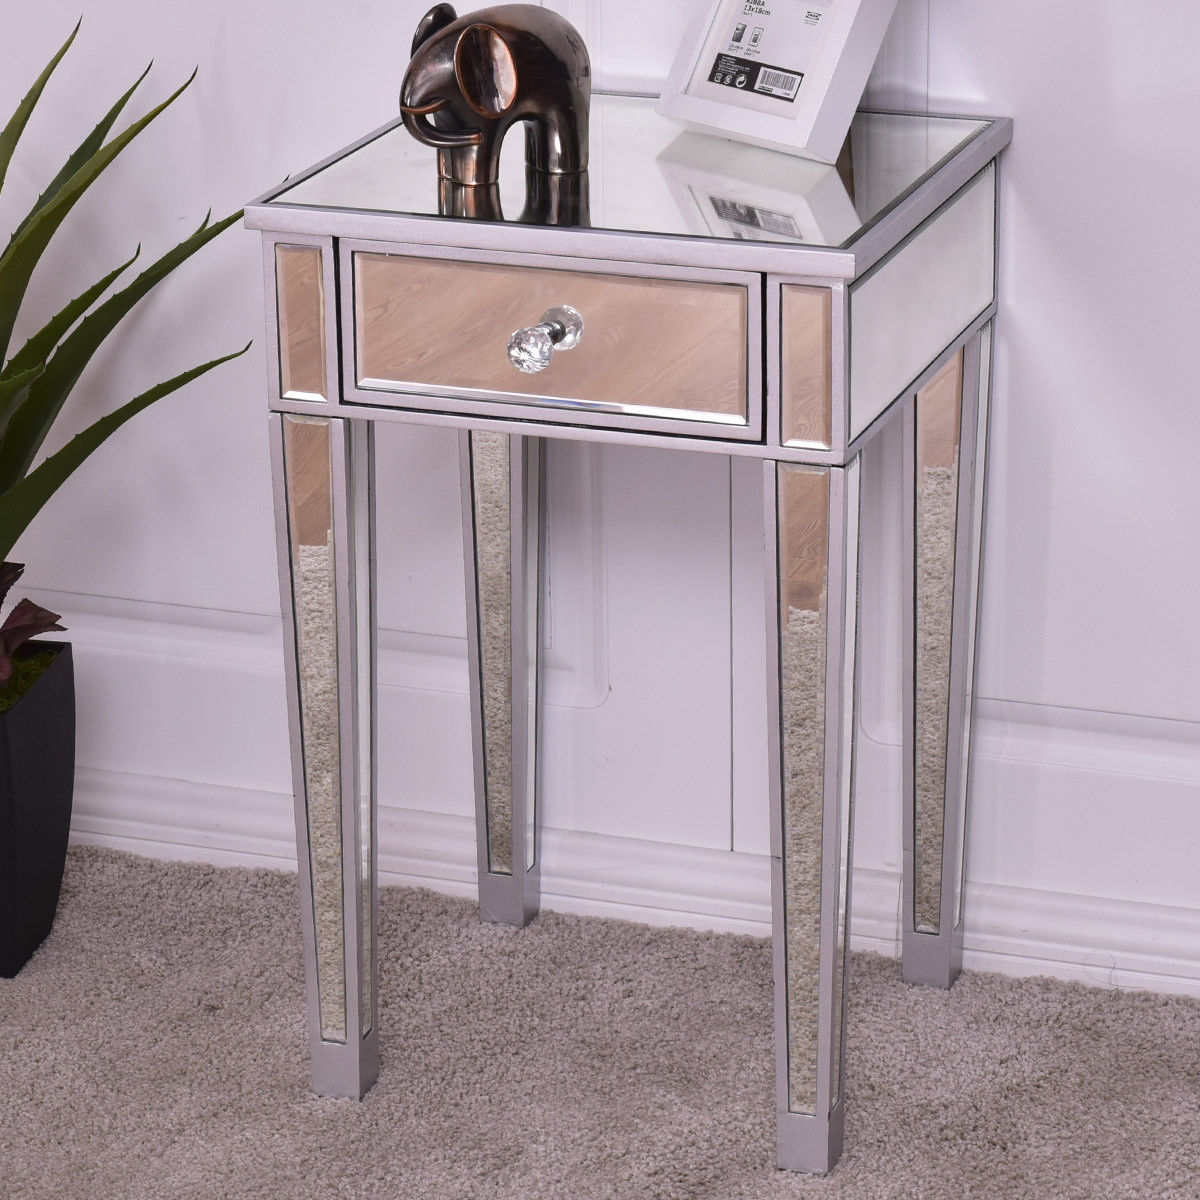 off giantex mirrored accent table nightstand end luxury modern bedside storage cabinet with drawer coffee small living room decorating ideas gold corner round industrial pier one